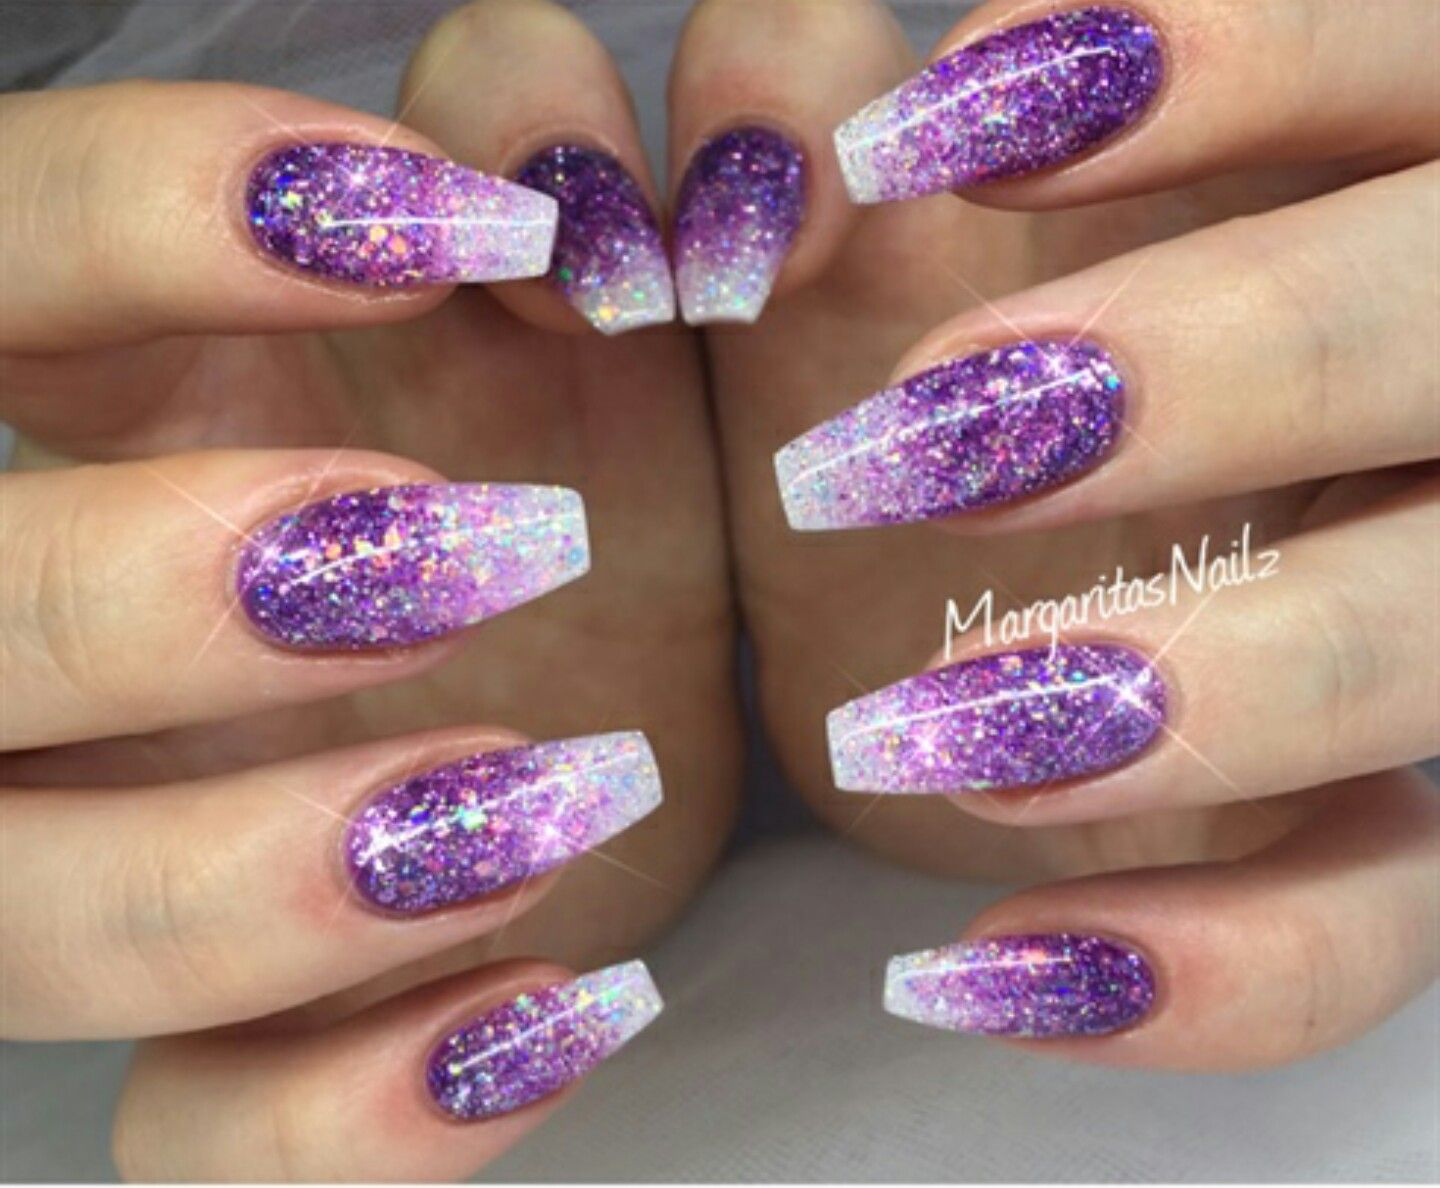 Pin By Sandy Snyder On Nails Purple Glitter Nails Purple Nail Art Designs Purple Nail Art